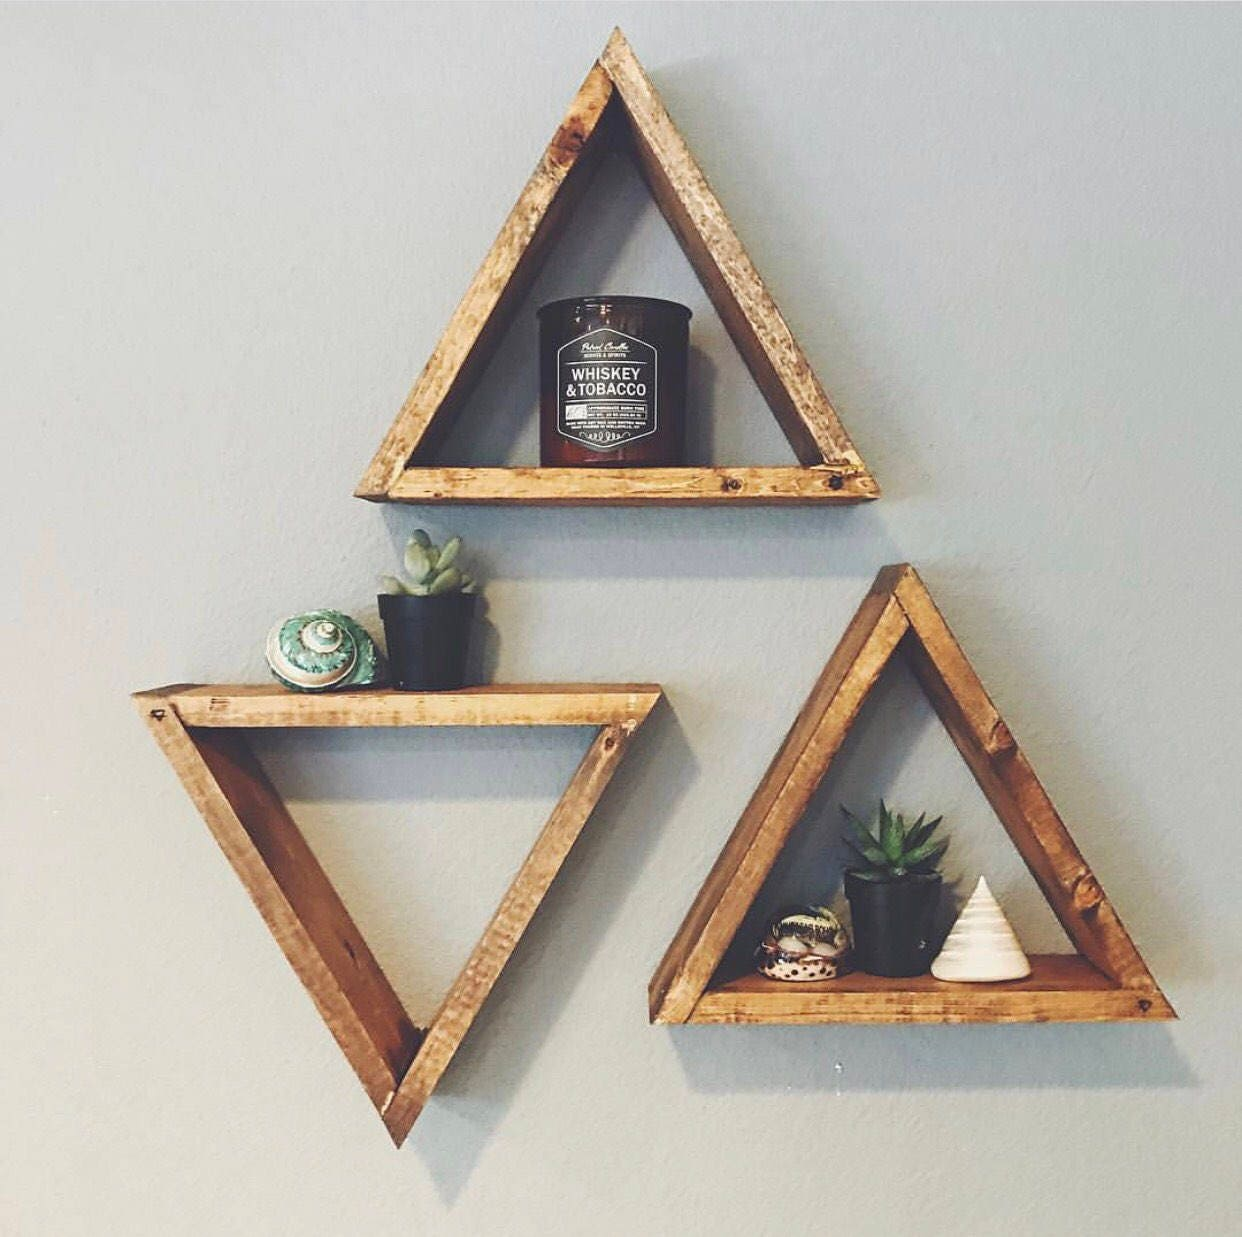 Single wood triangle shelf geometric wall boho decor